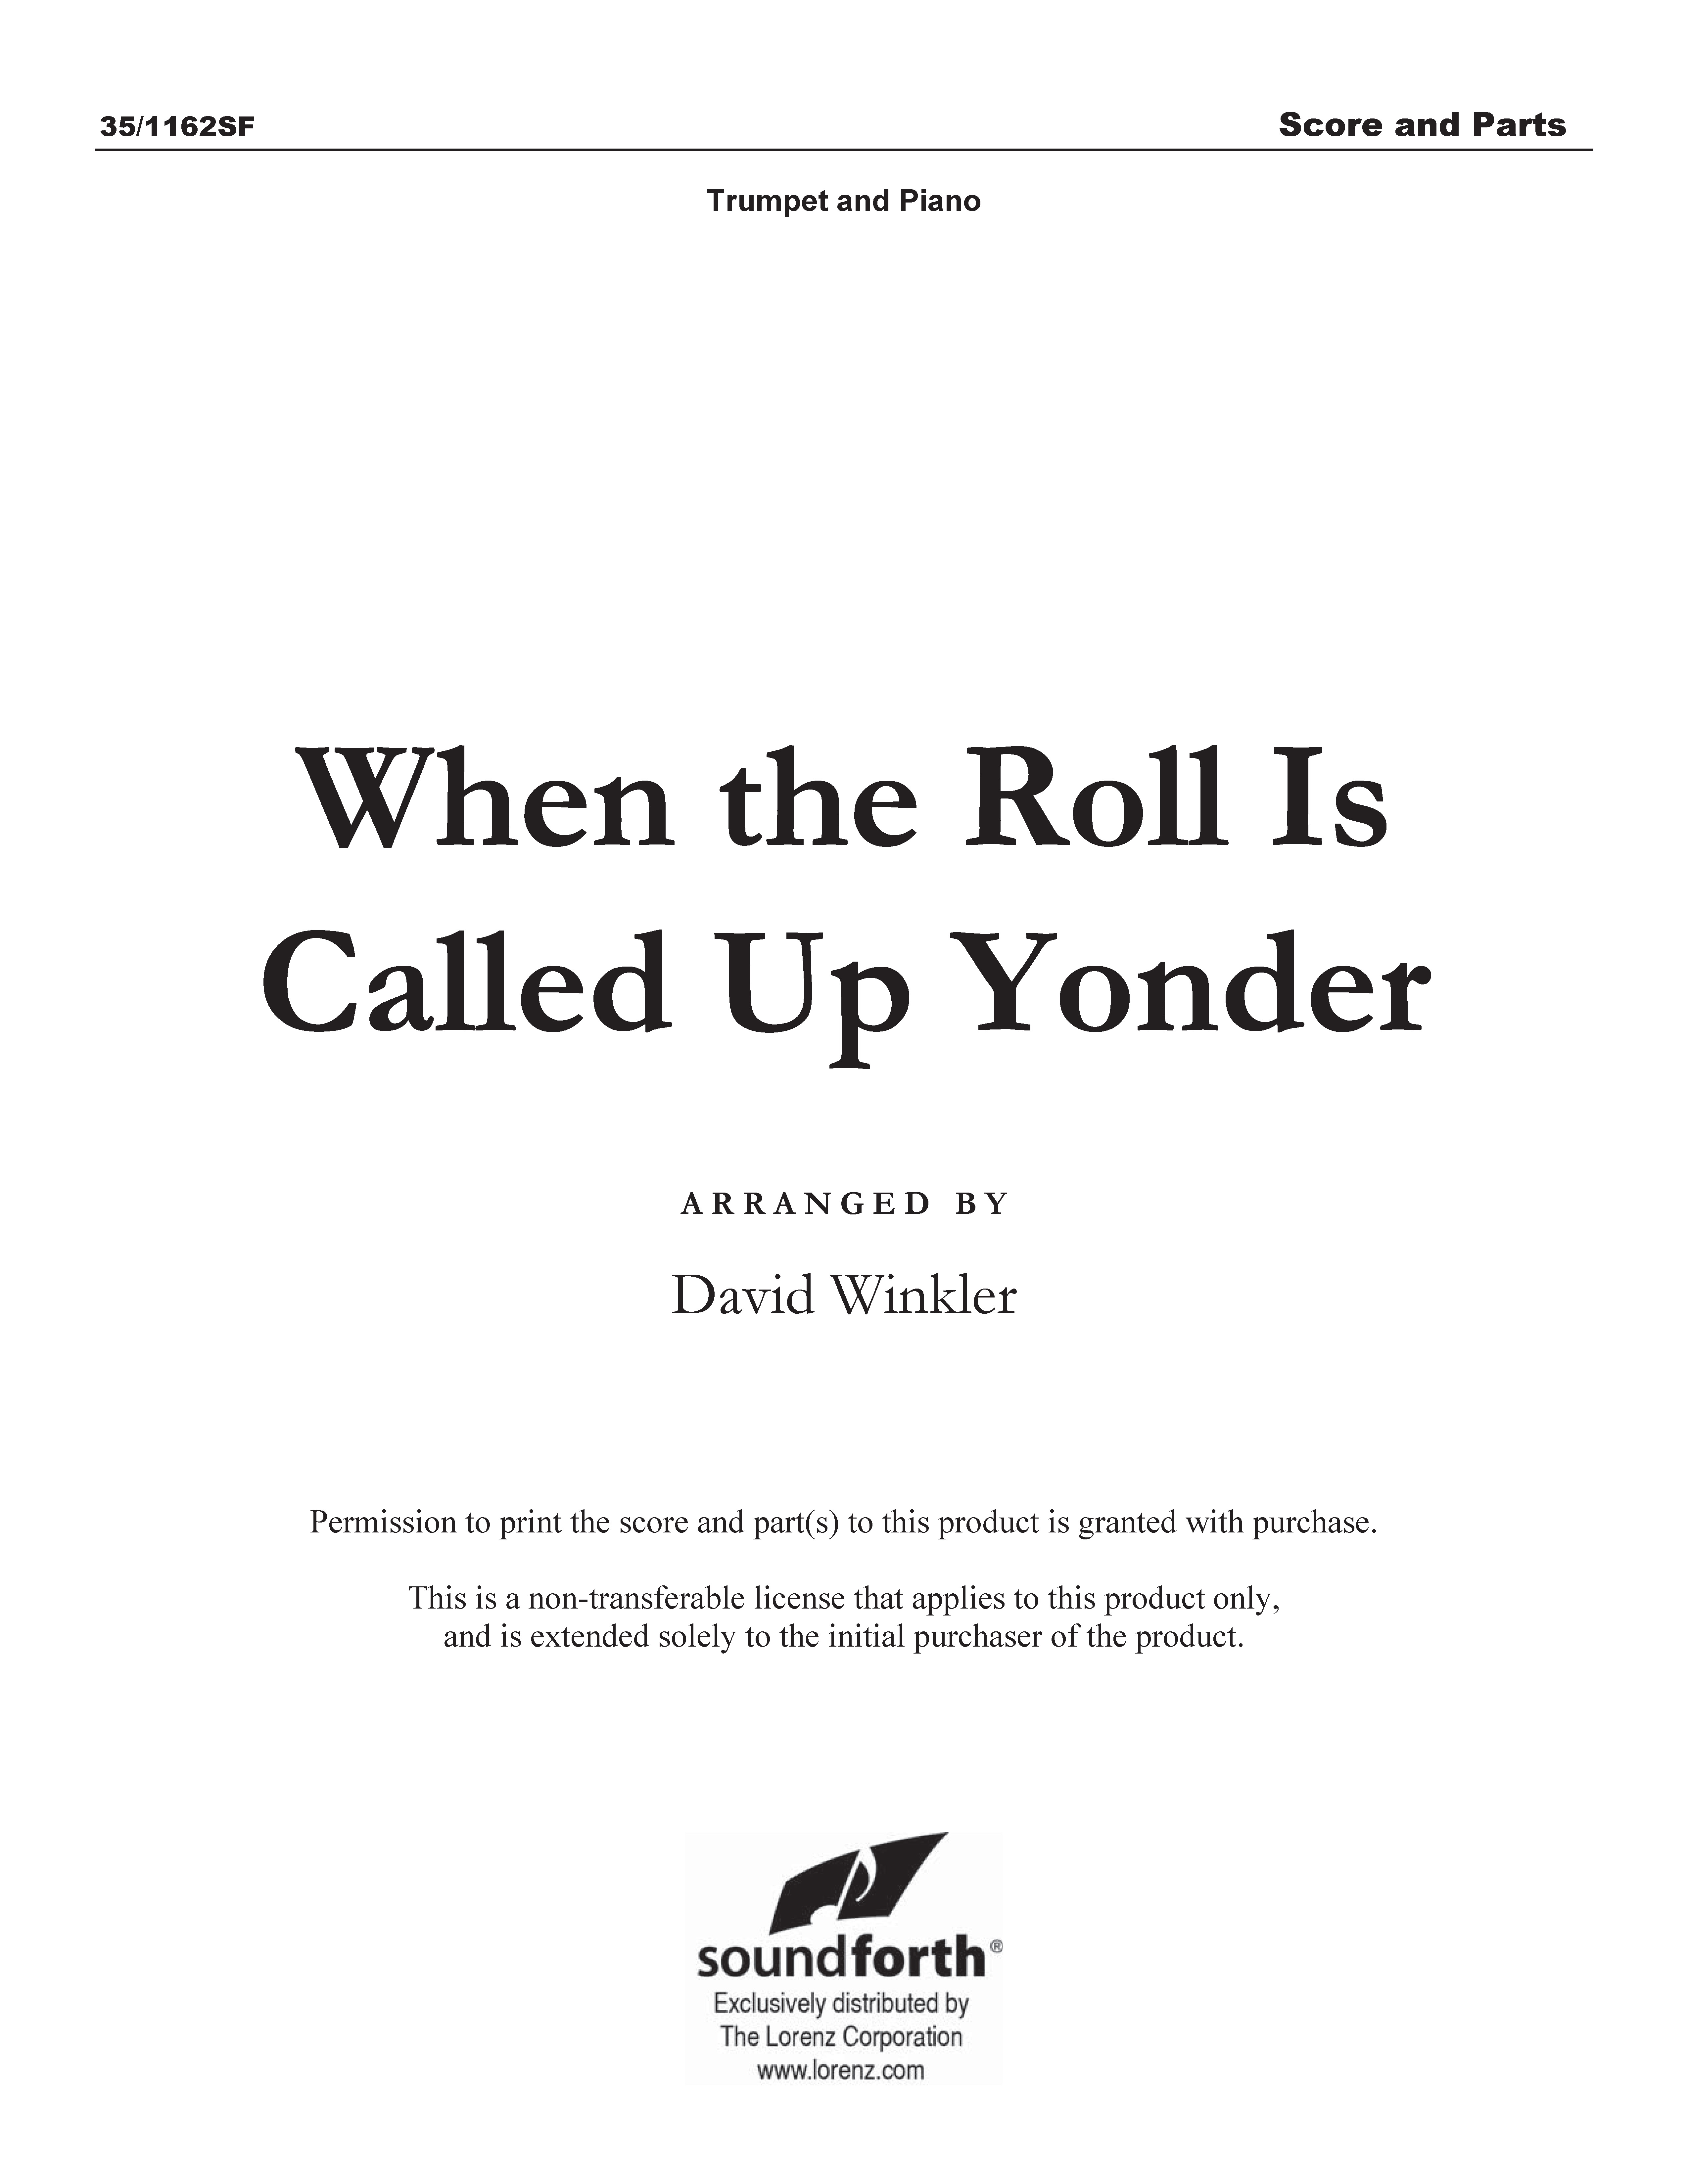 When the Roll Is Called Up Yonder (Digital Delivery)